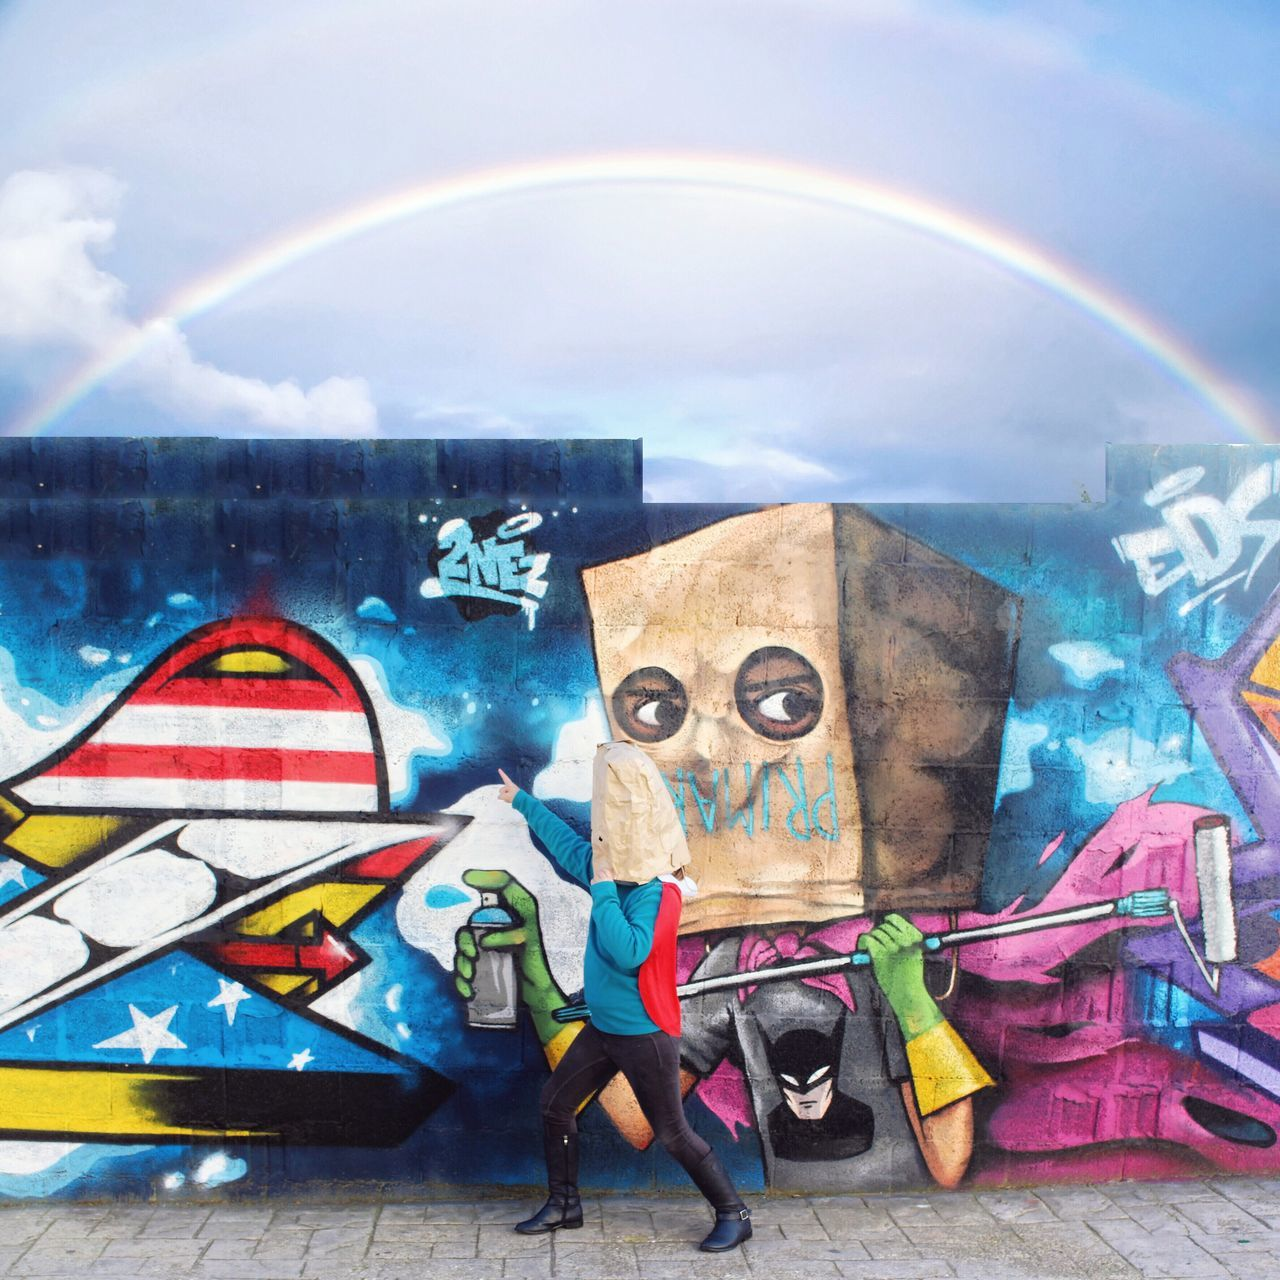 Creativity Human Representation Multi Colored No People Sky Day Representation Architecture Outdoors Graffity And Artstreet Graffiti